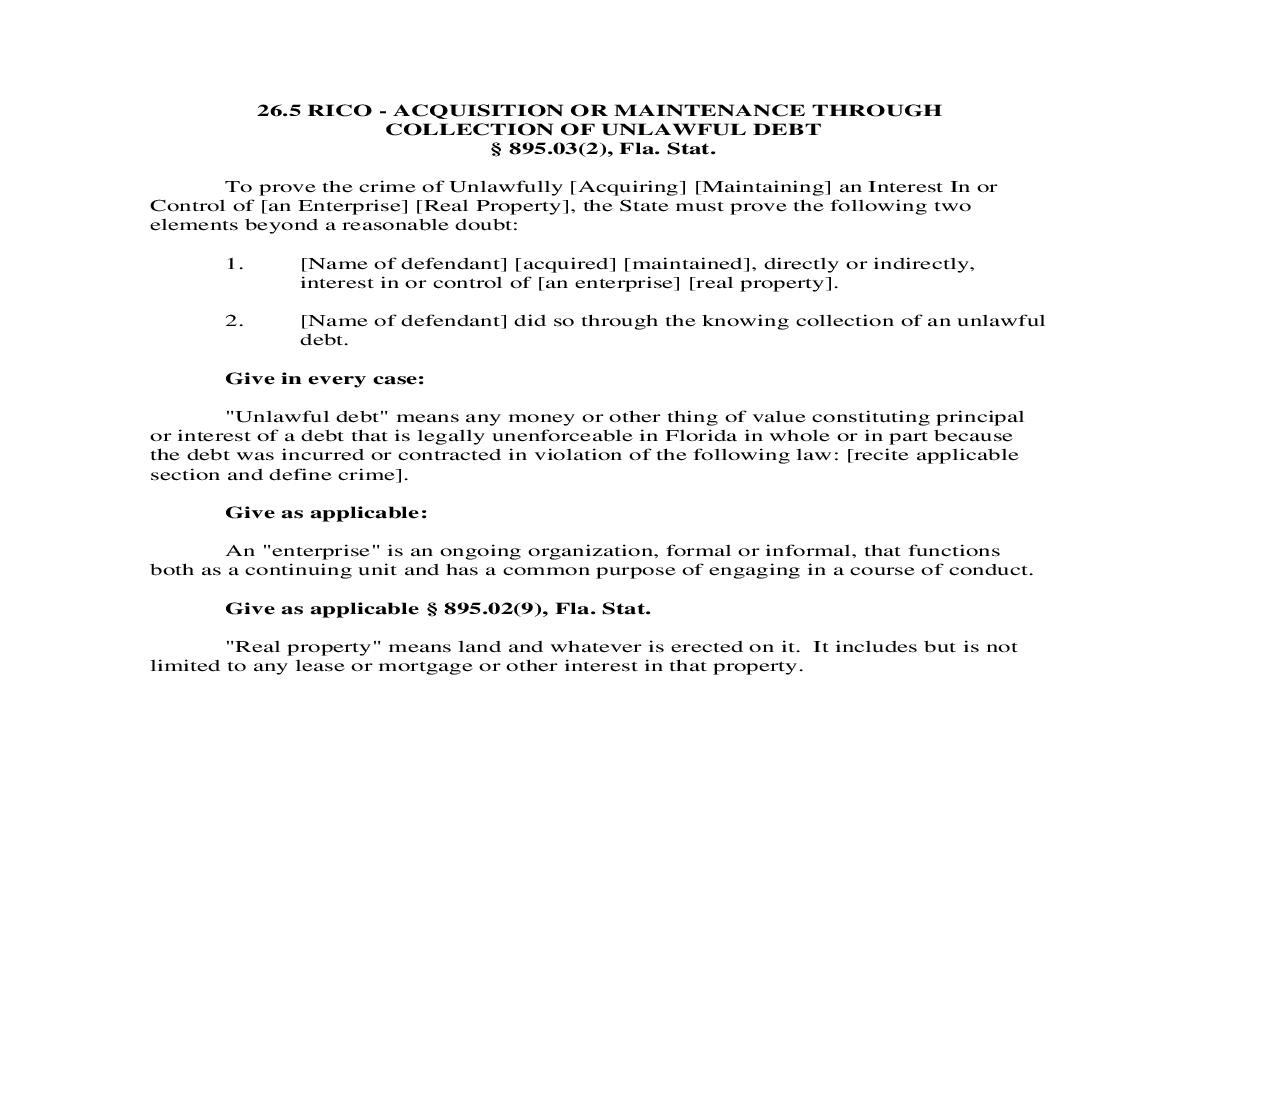 26.5. RICO - Acquisition Or Maintenance Through Collection Of Unlawful Debt | Pdf Doc Docx | Florida_JI